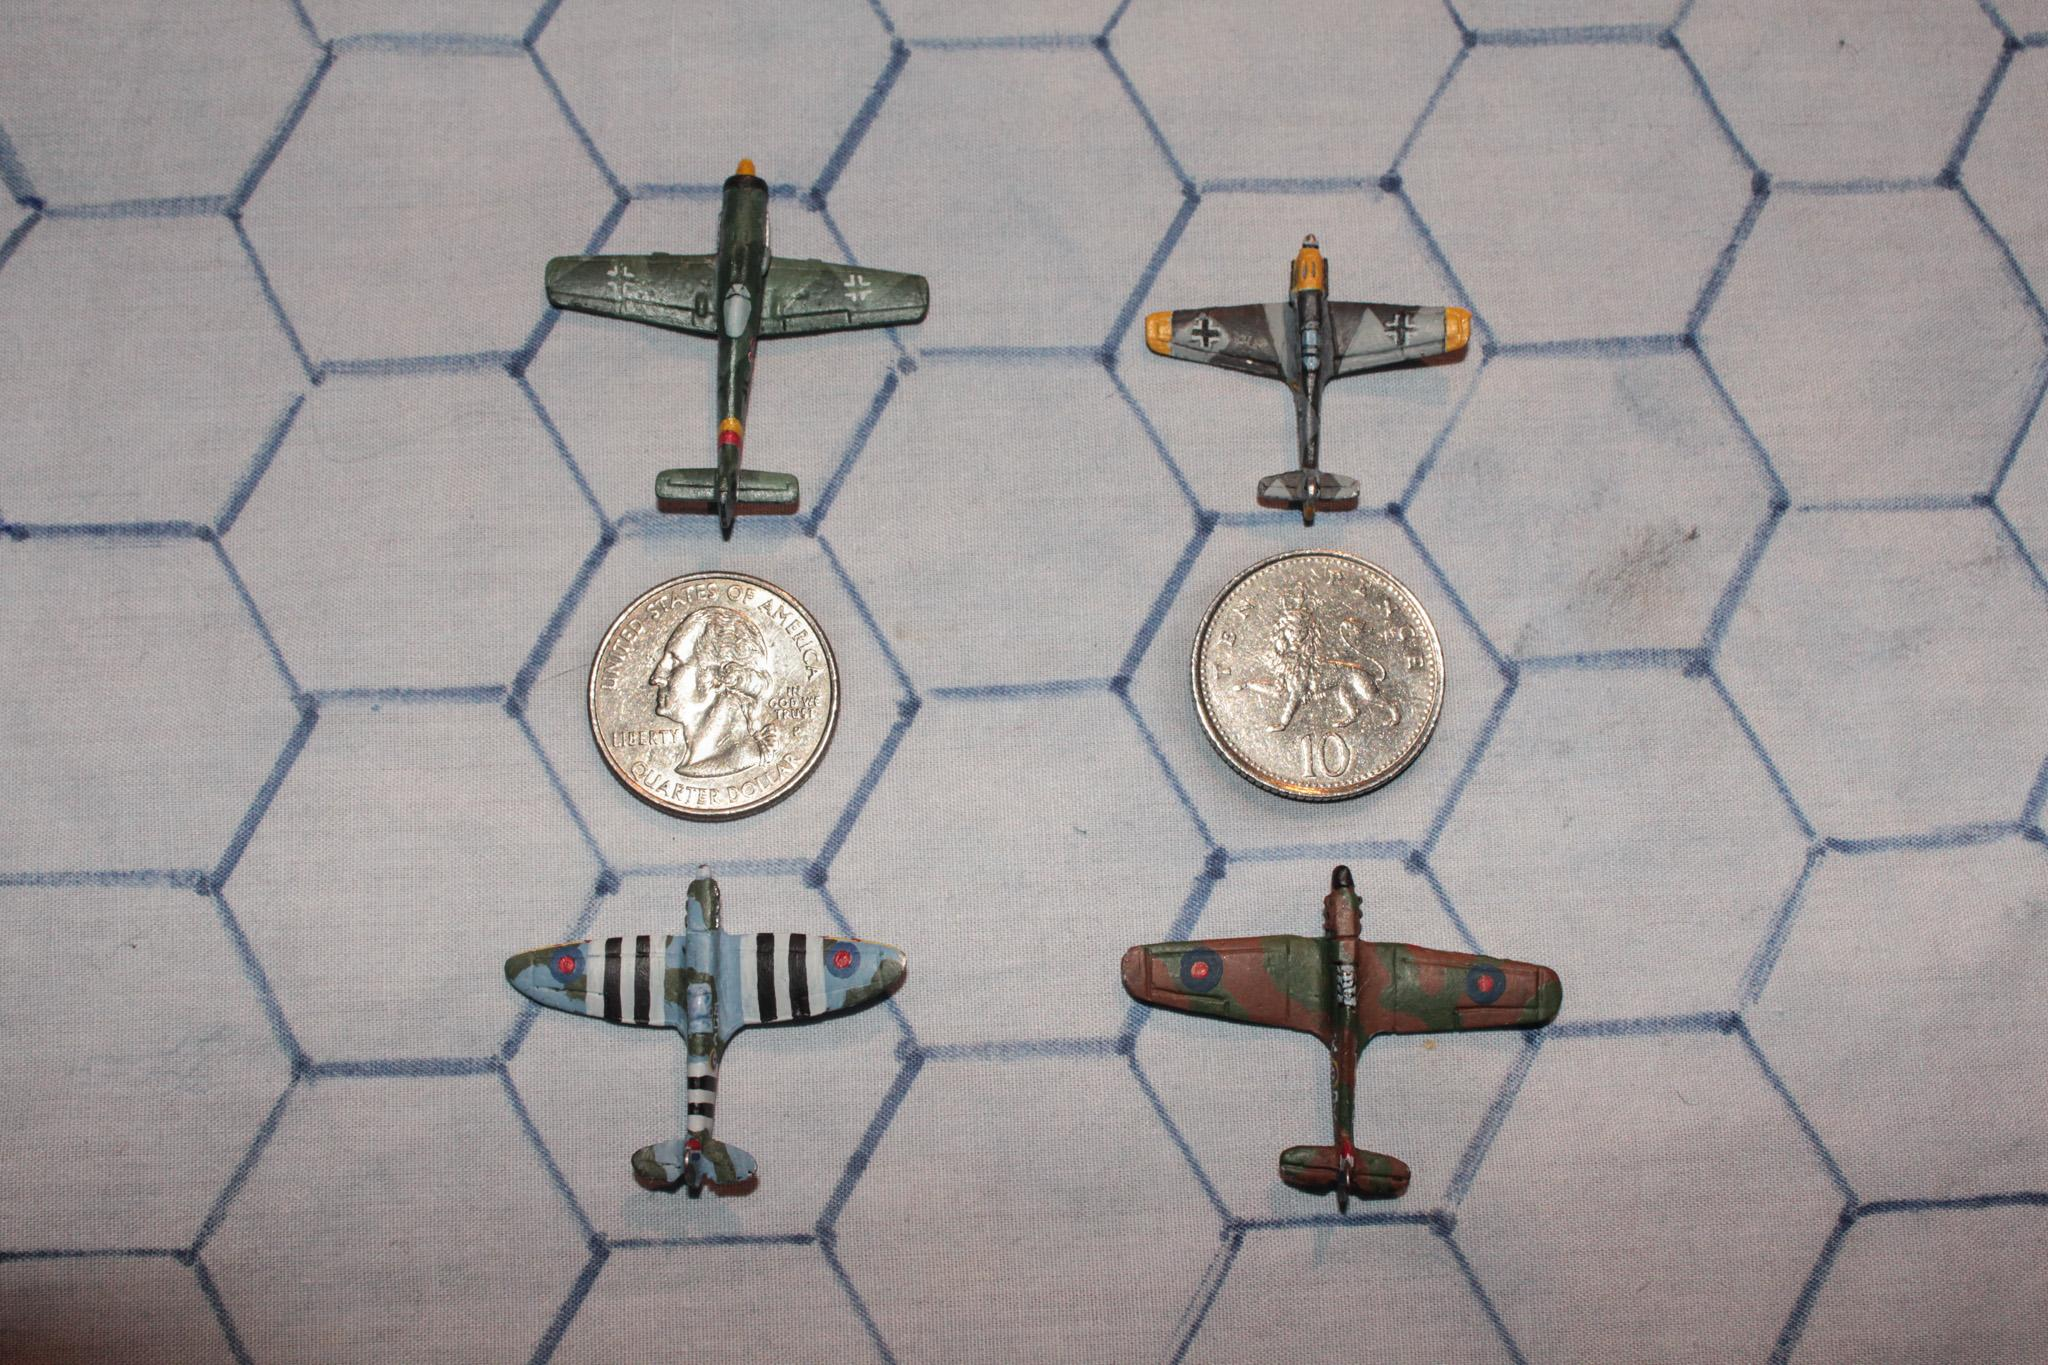 1:300, 6mm, Air Combat, Airborne, Aircraft, Airplane, Aviation, Check Your 6!, Fliers, Luftwaffe, Planes, World War 2